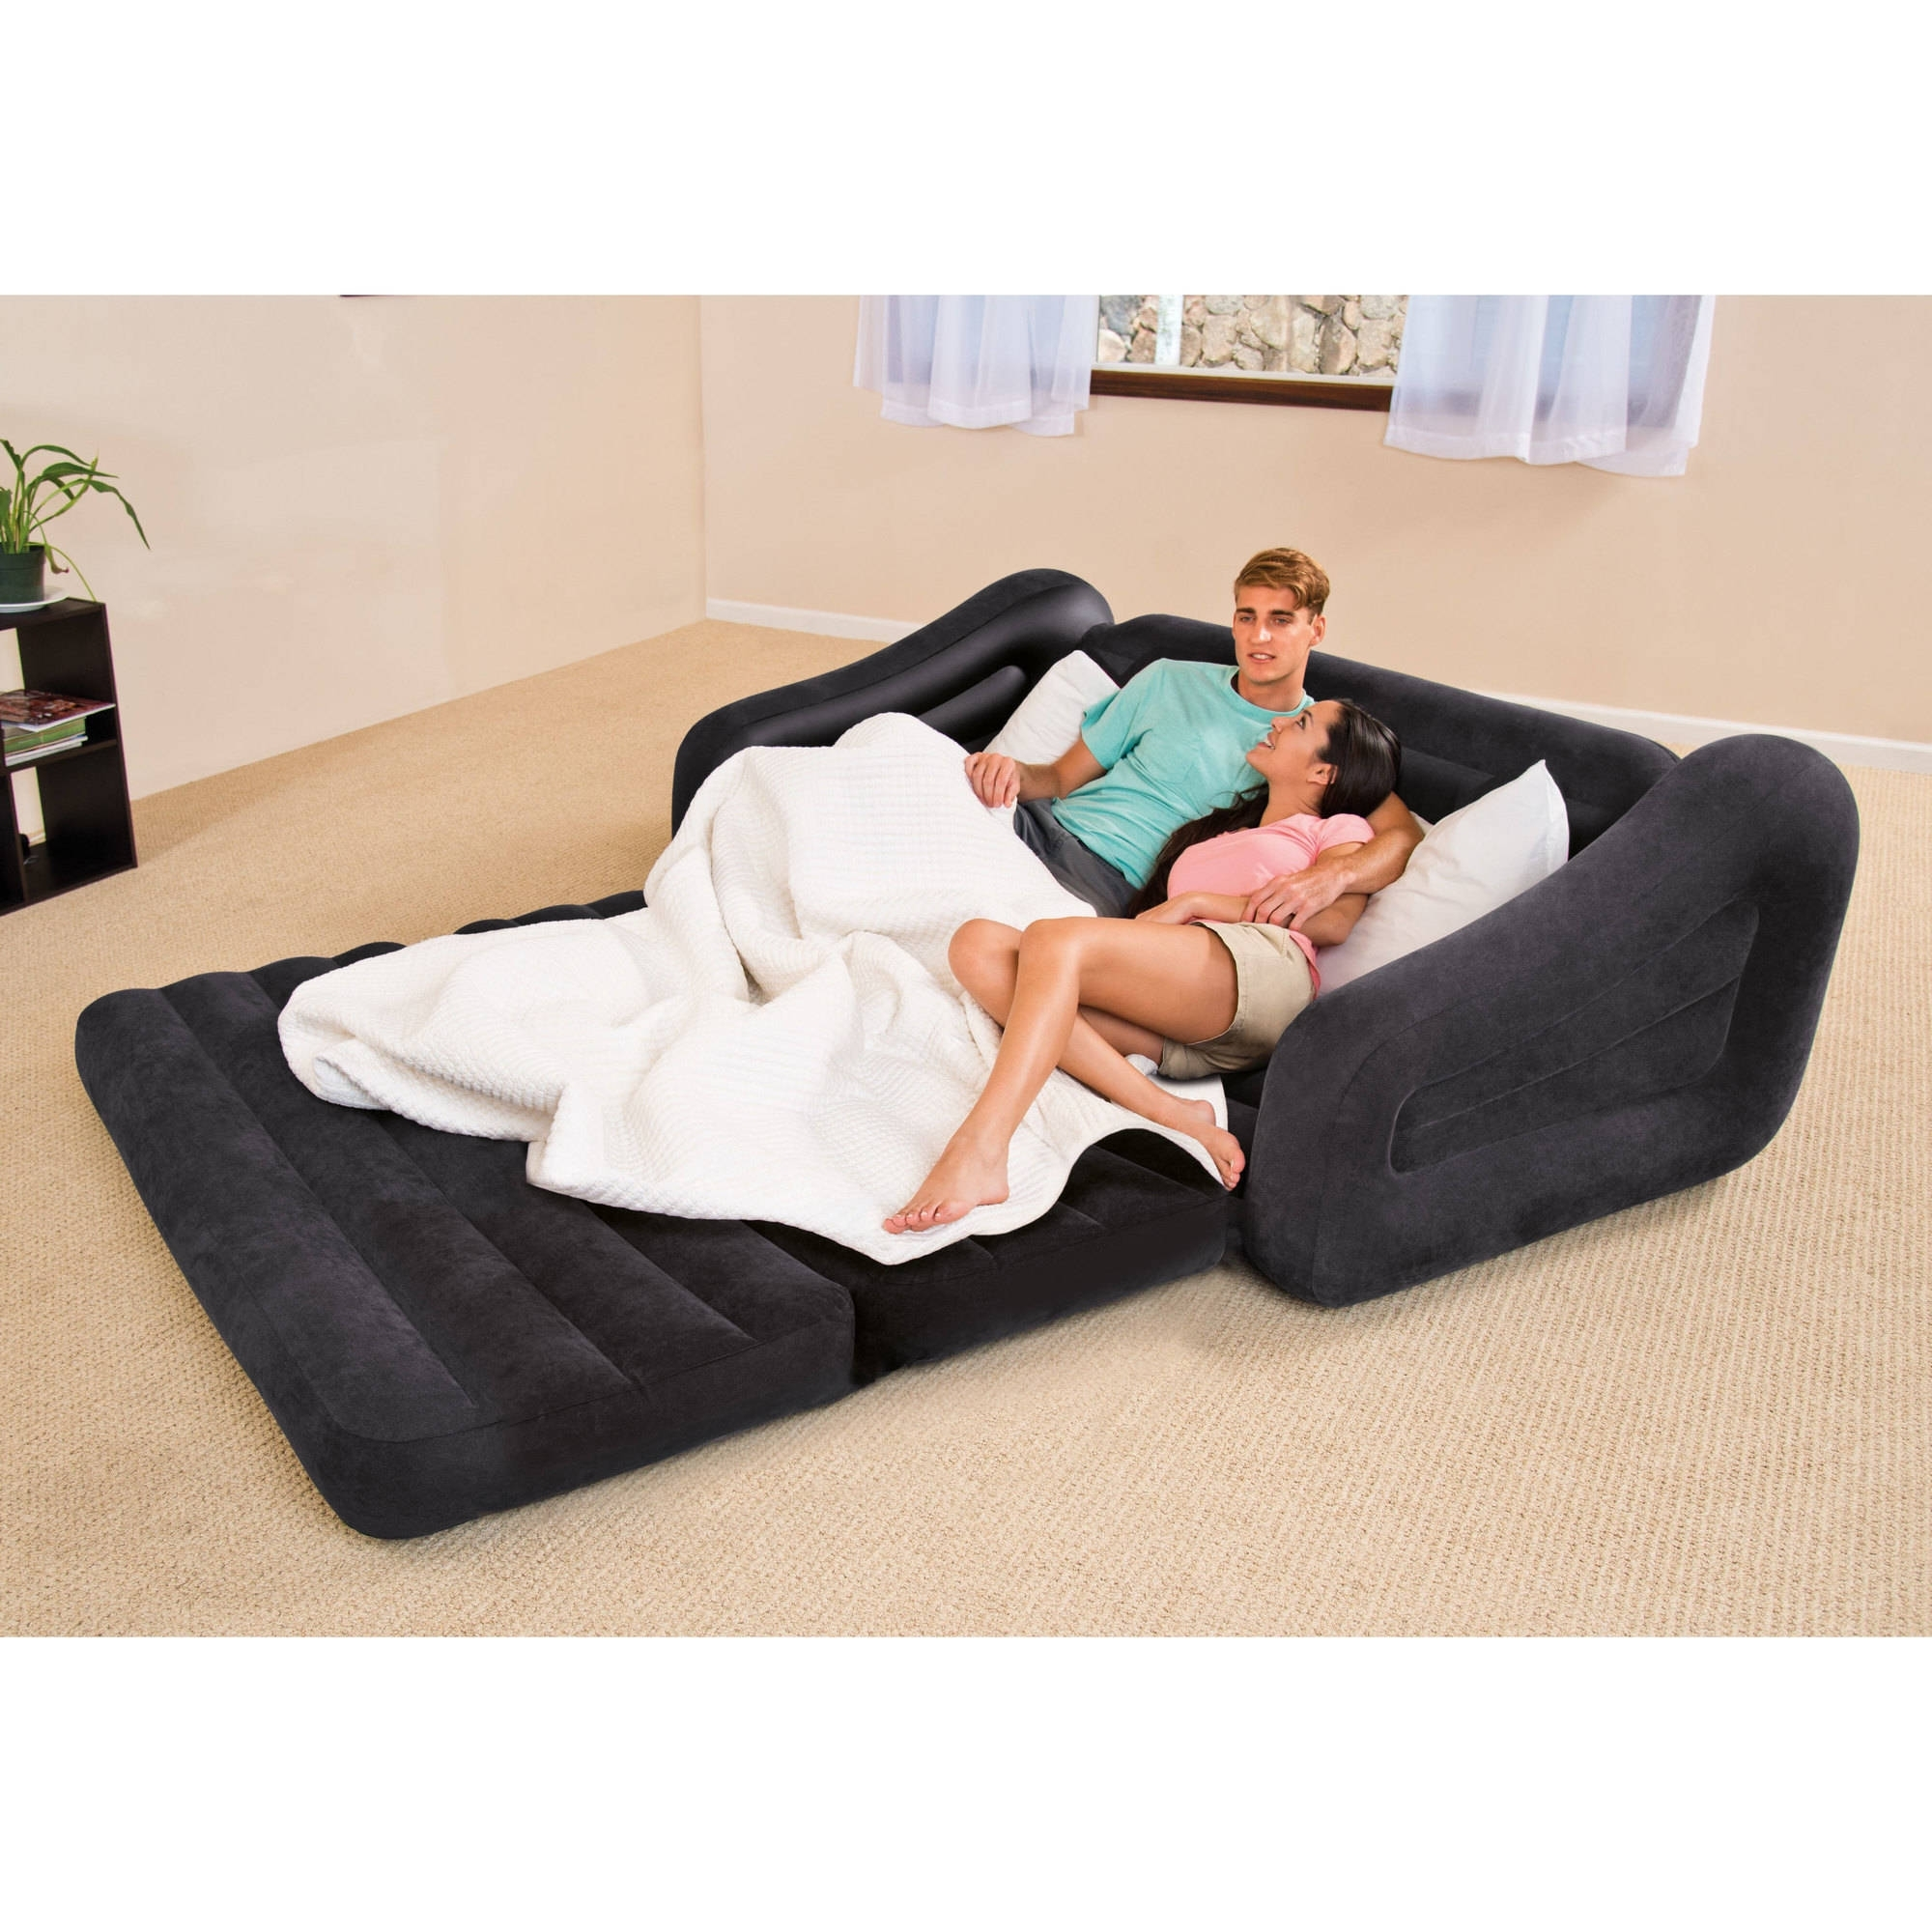 2017 Intex Queen Inflatable Pull Out Sofa Bed – Walmart Inside Pull Out Sofa Chairs (View 10 of 15)